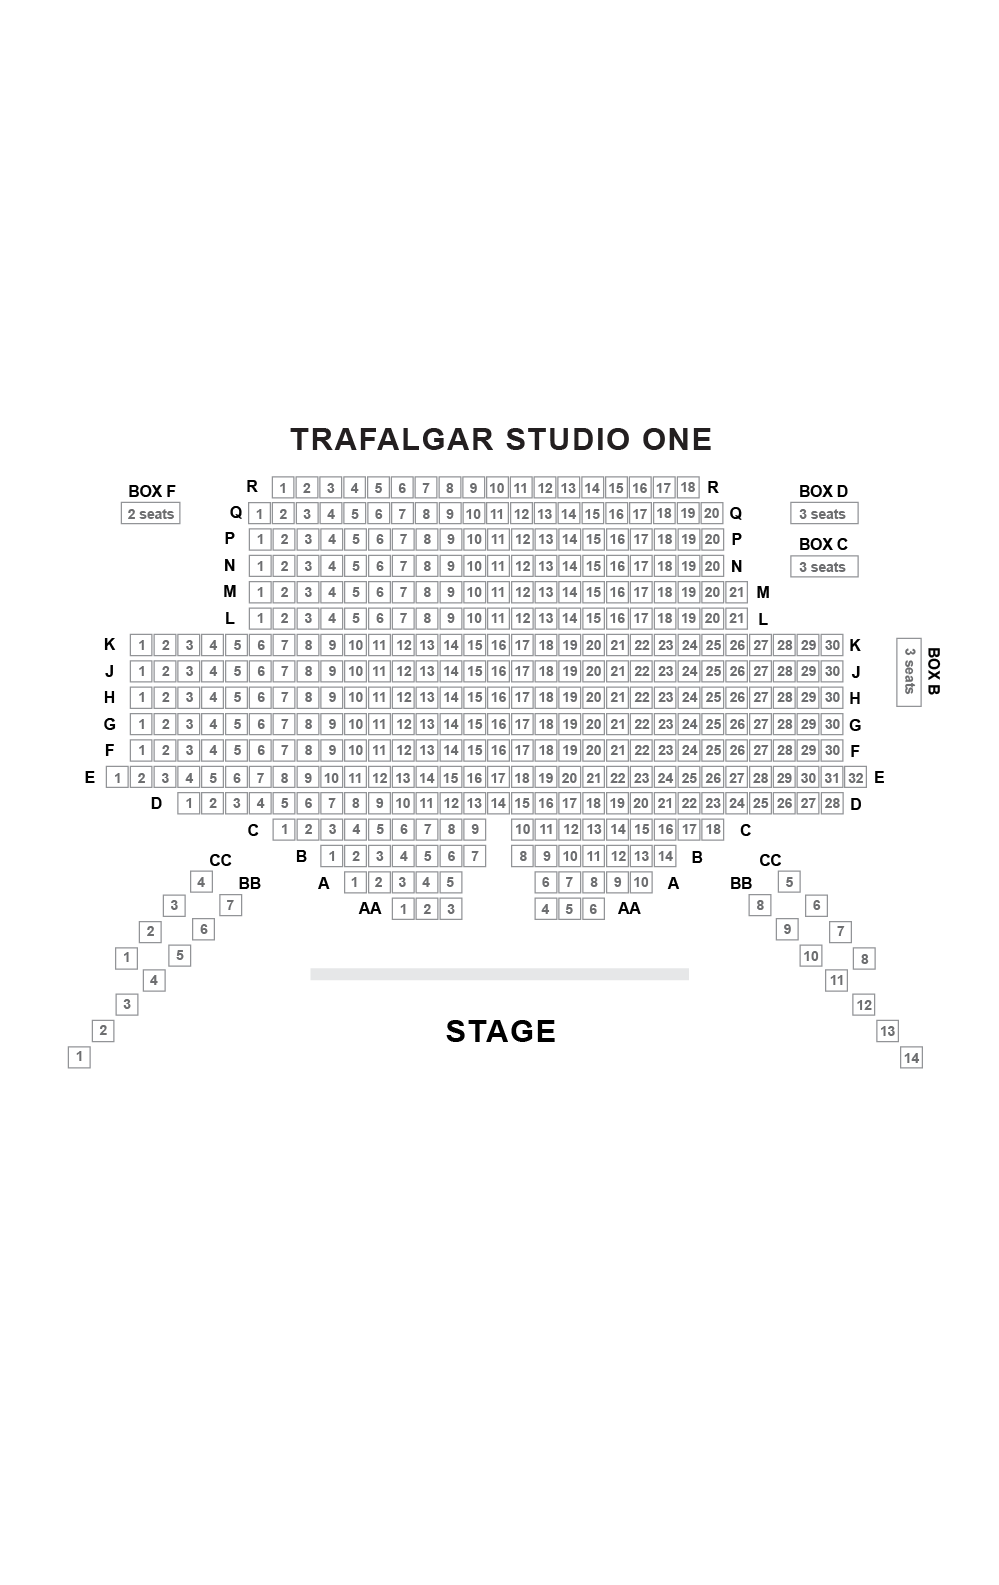 Trafalgar Studio One Seating Plan